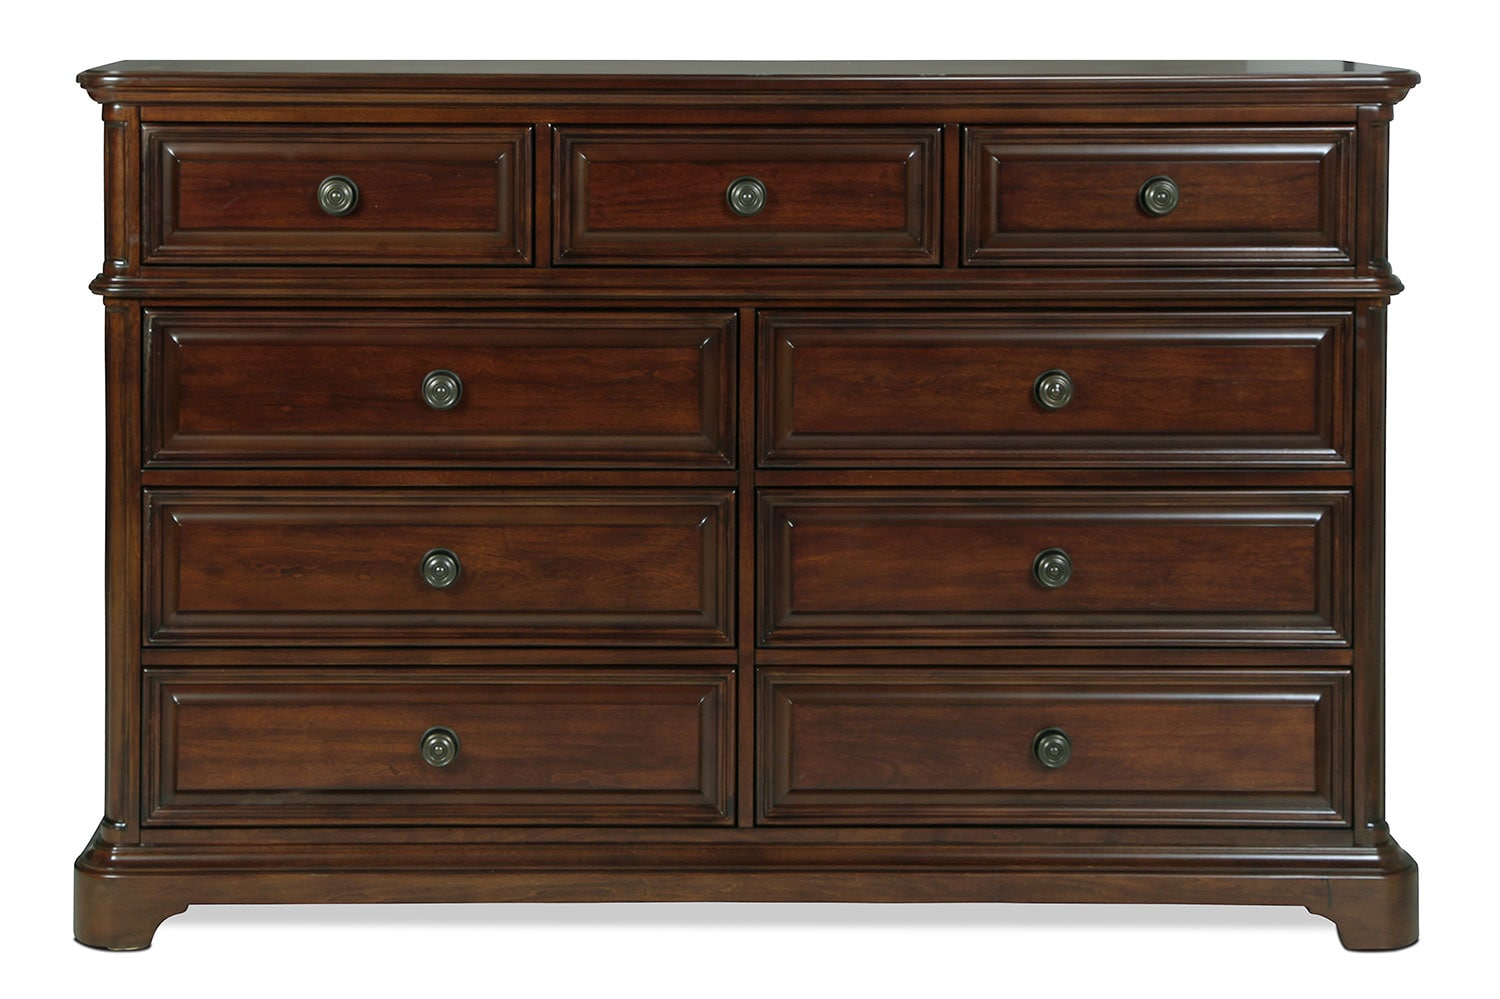 Huntington Dresser - Brown Cherry